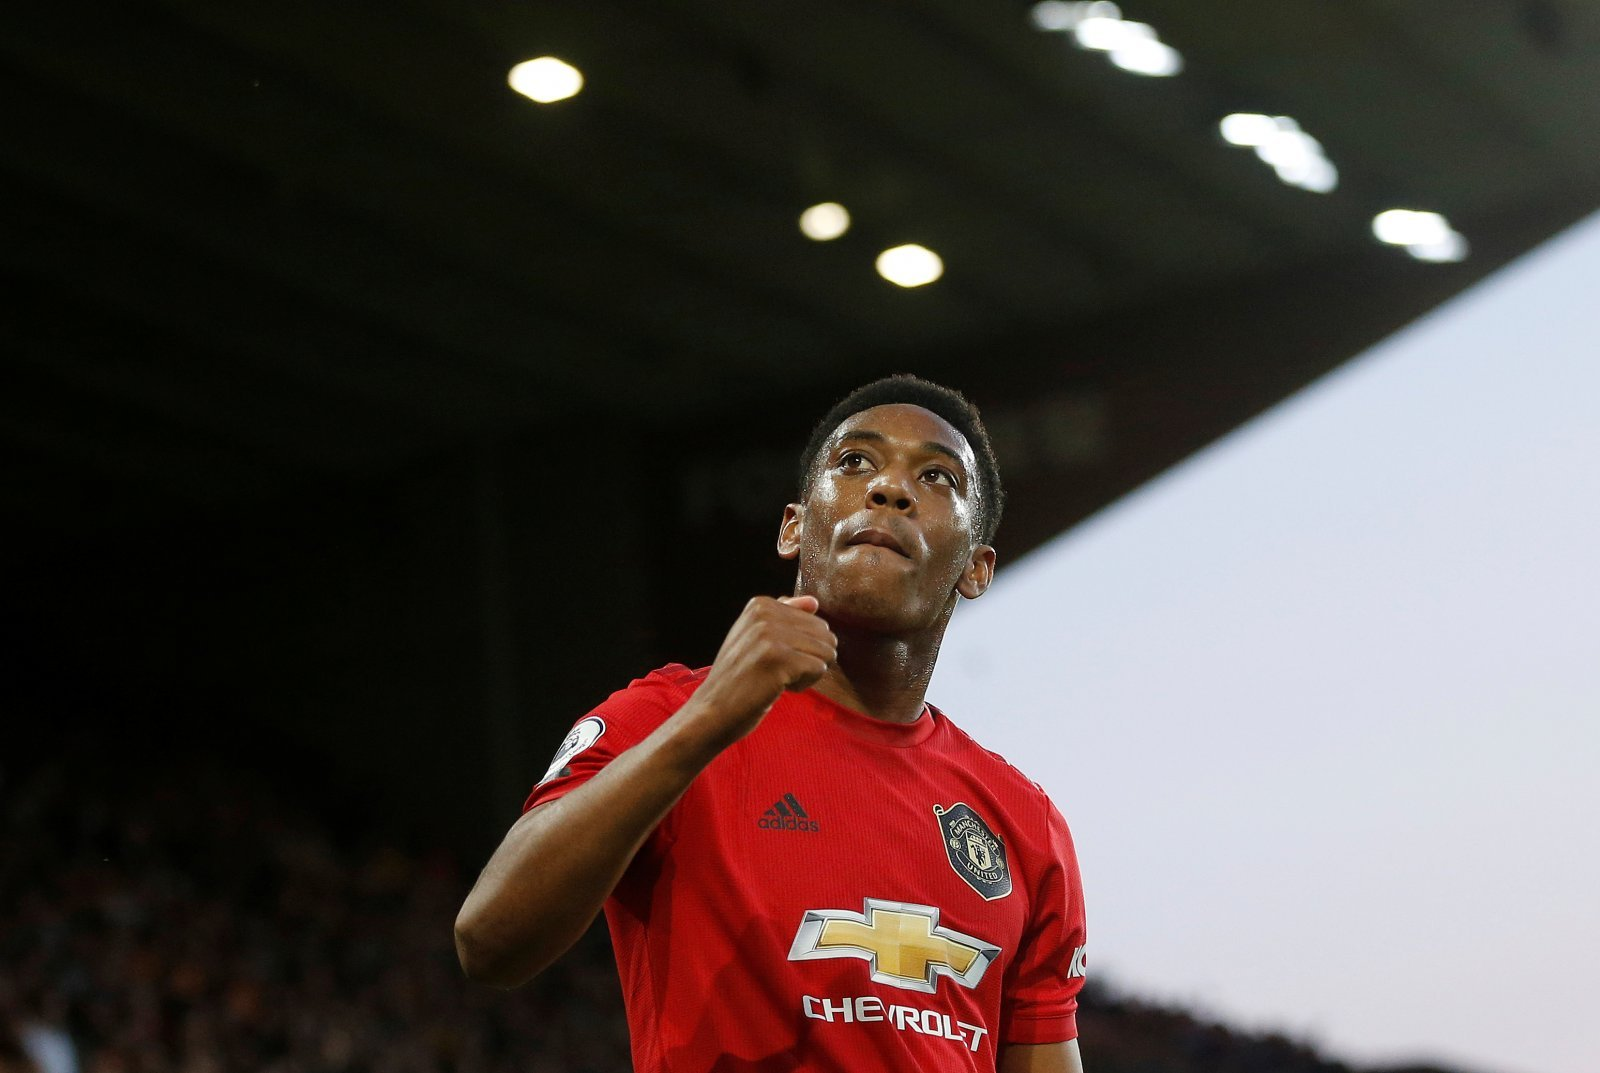 Manchester United: Fans excited as Anthony Martial returns from injury in Europa League win